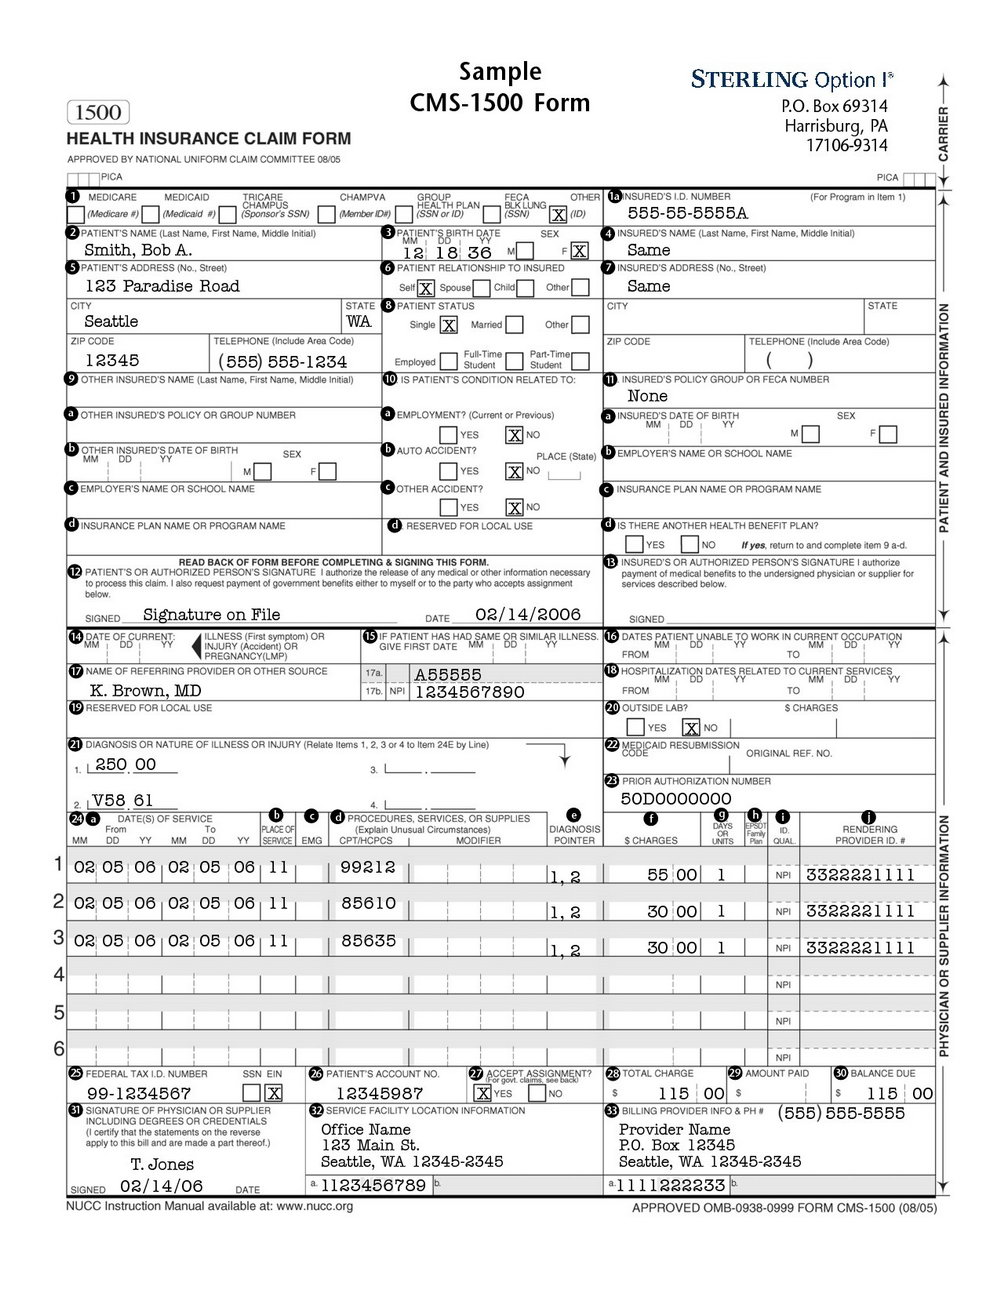 1500 Health Insurance Claim Form